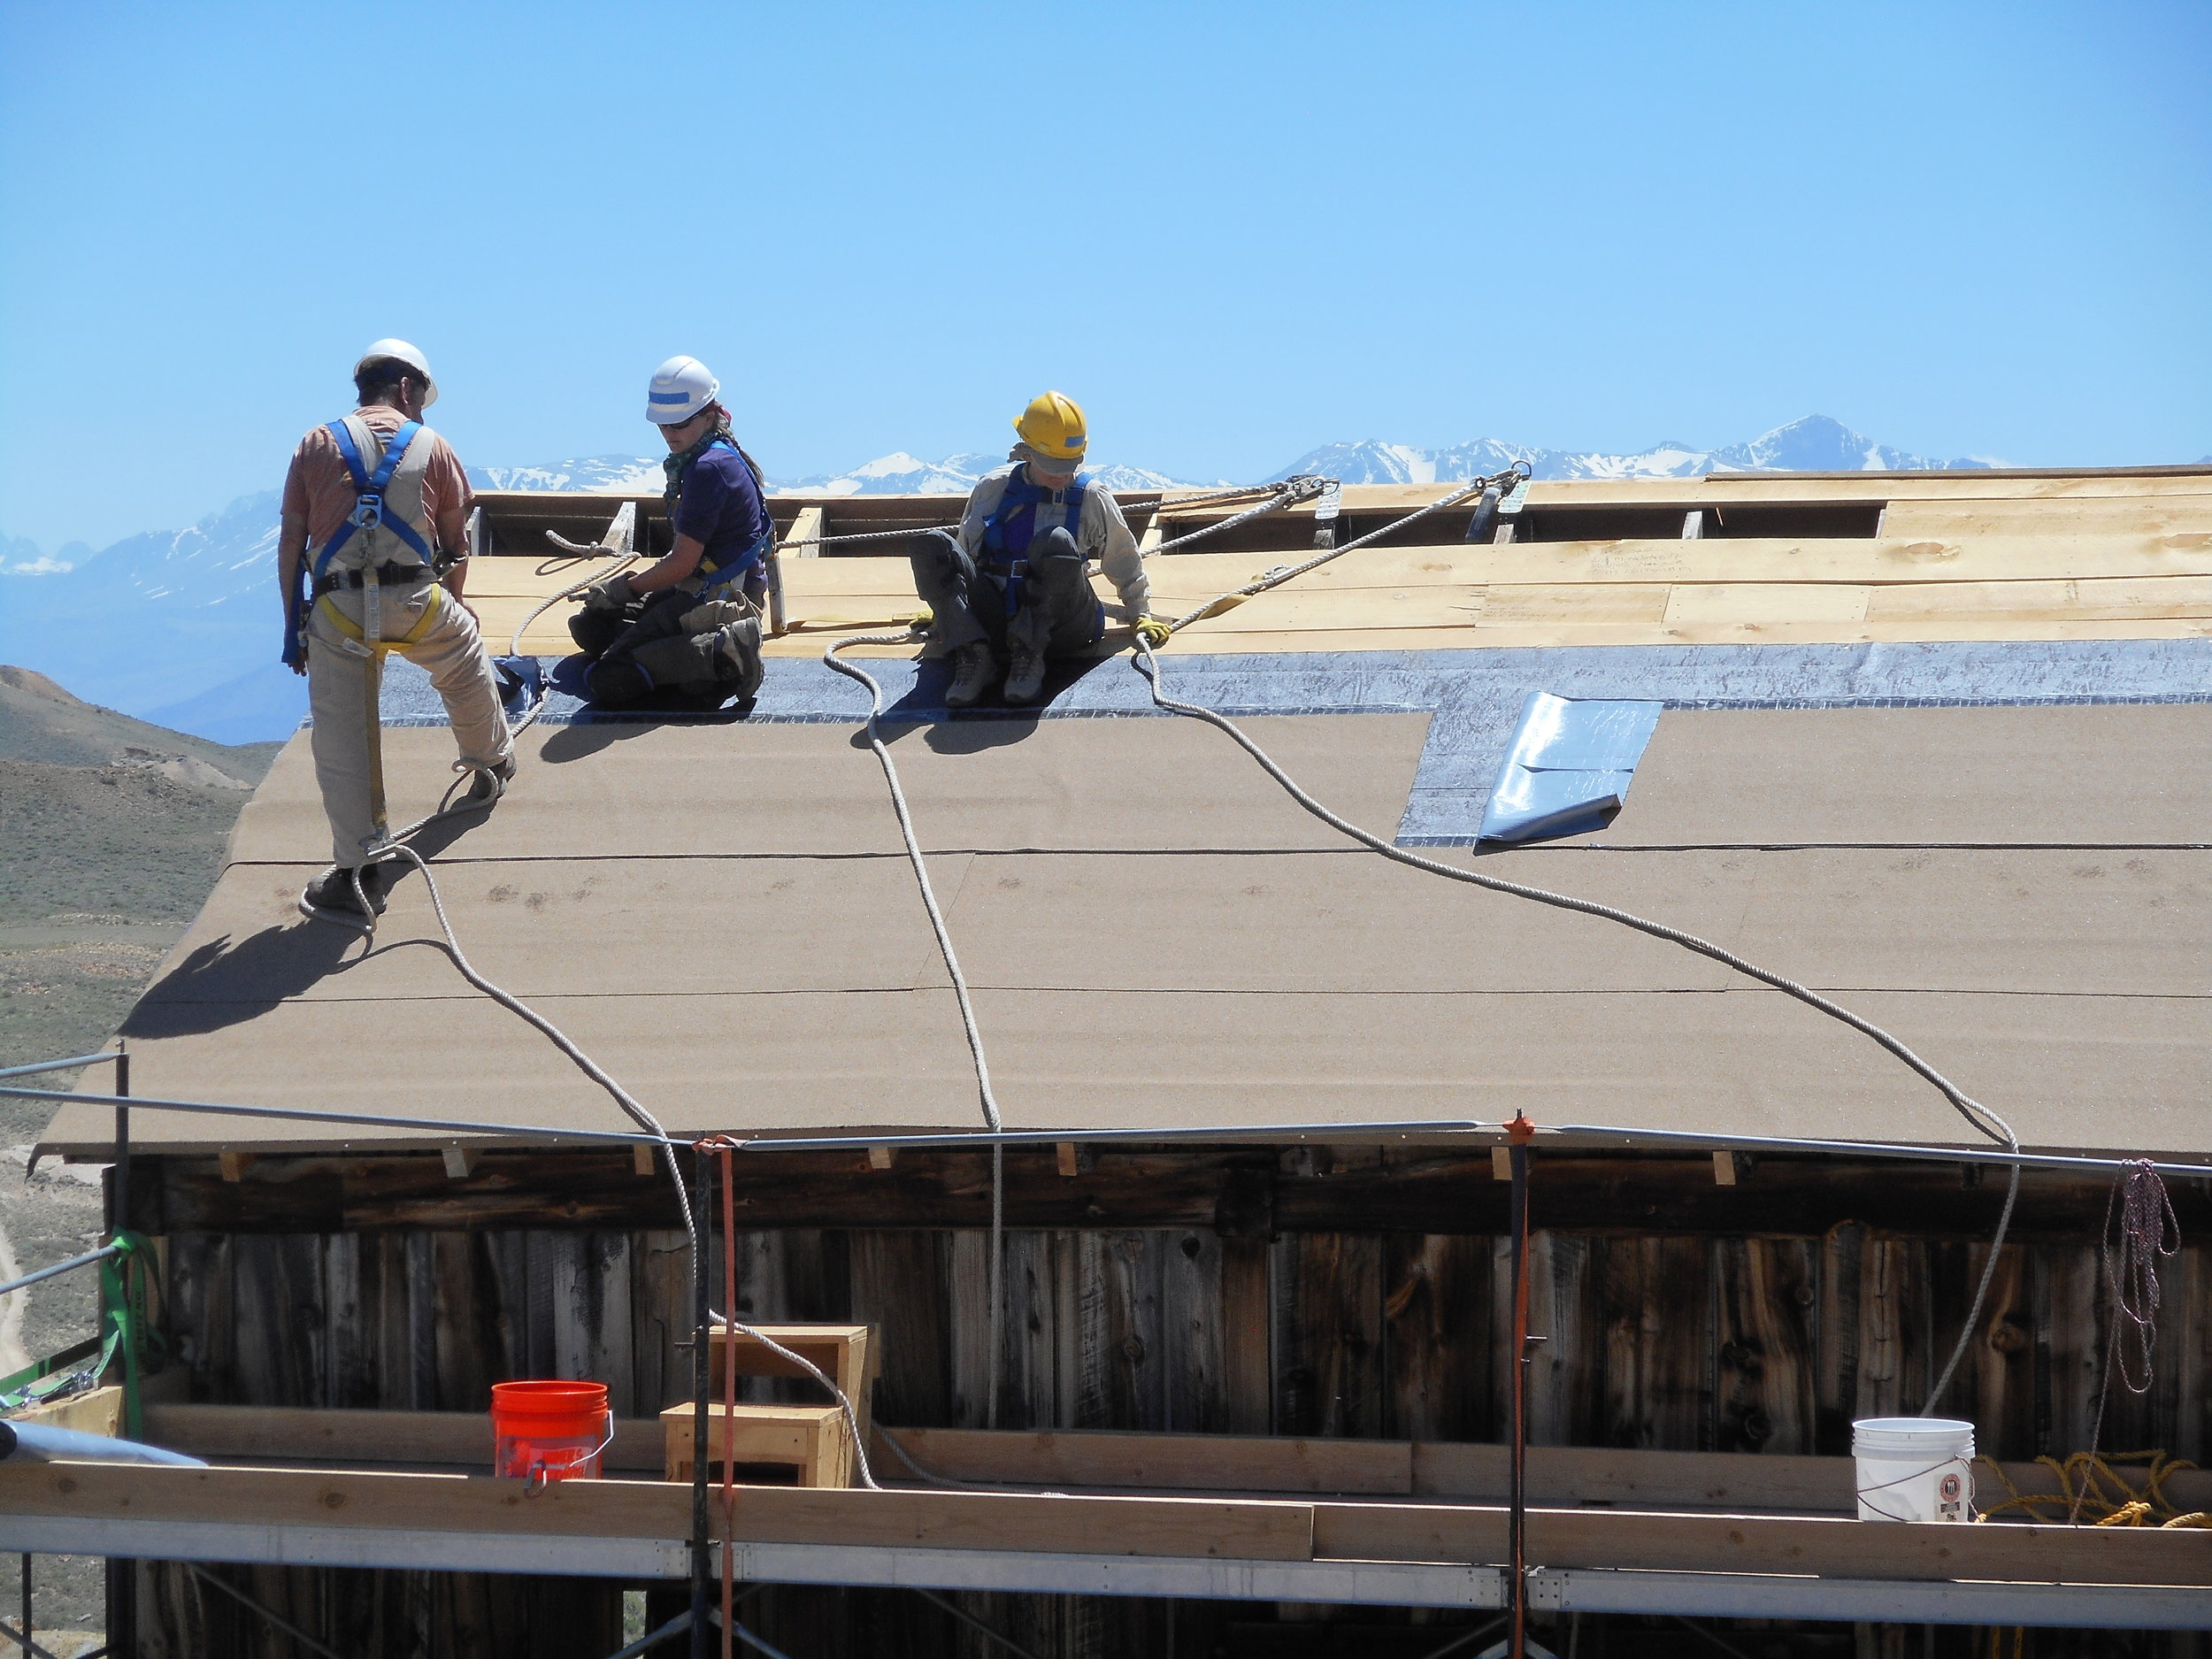 In 2018, Bodie Foundation funded workers from the non-profit HistoriCorps to repair the roof of the Standard Mining Company's hoisting works building. Photo by Brad Sturdivant